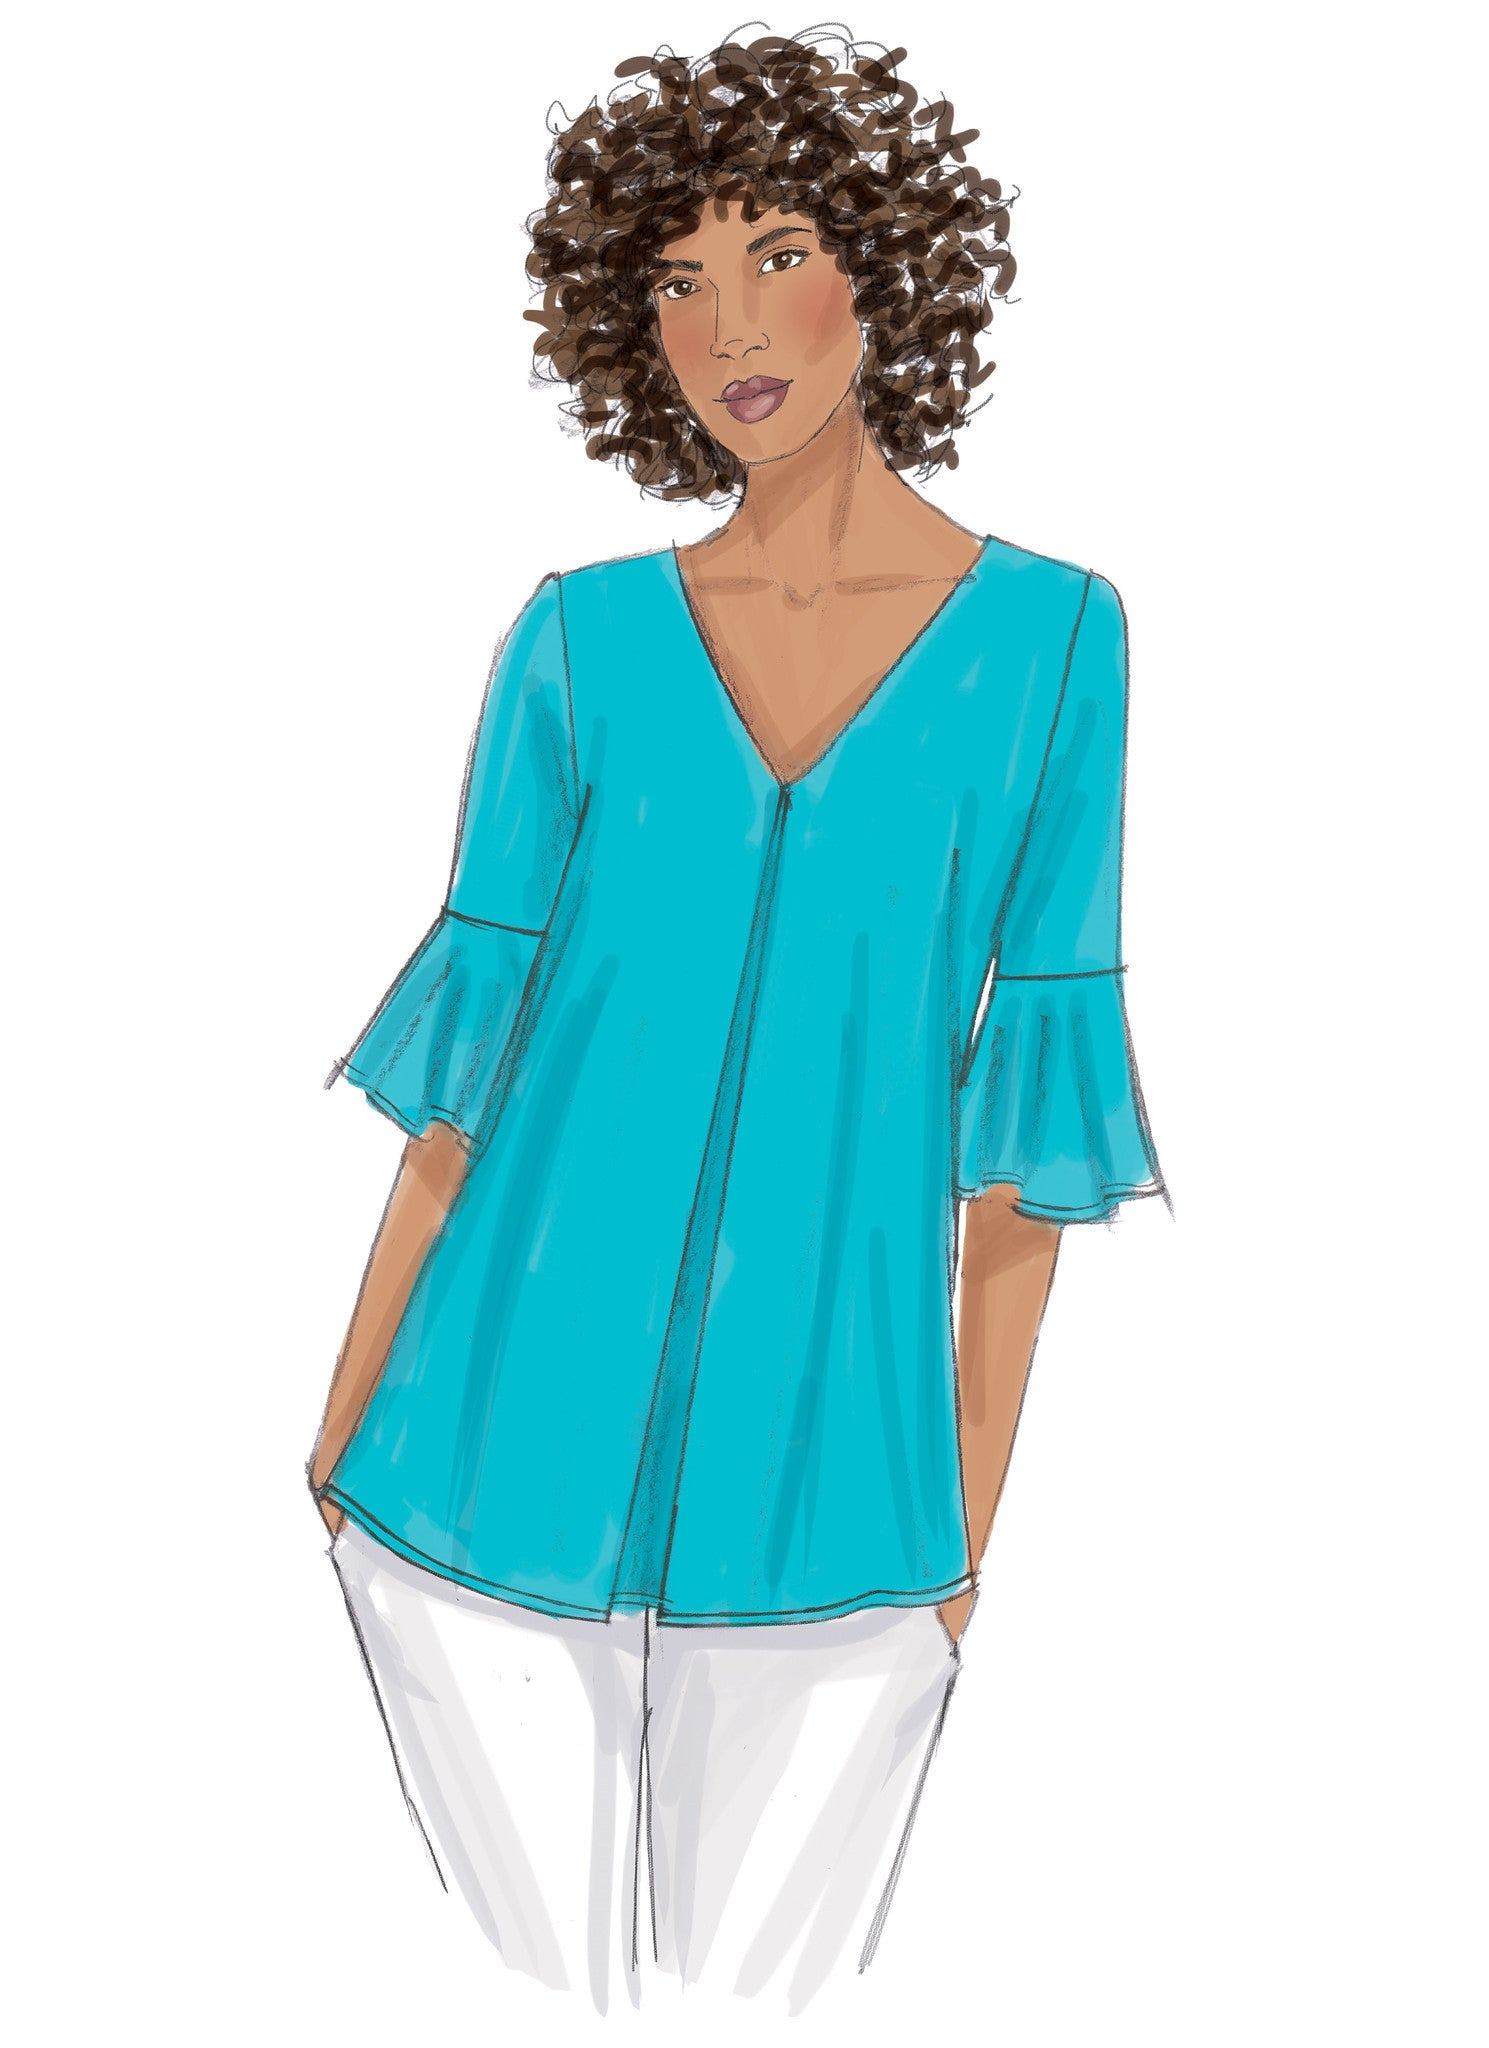 B6456 Misses' Tulip or Ruffle Sleeve Tops